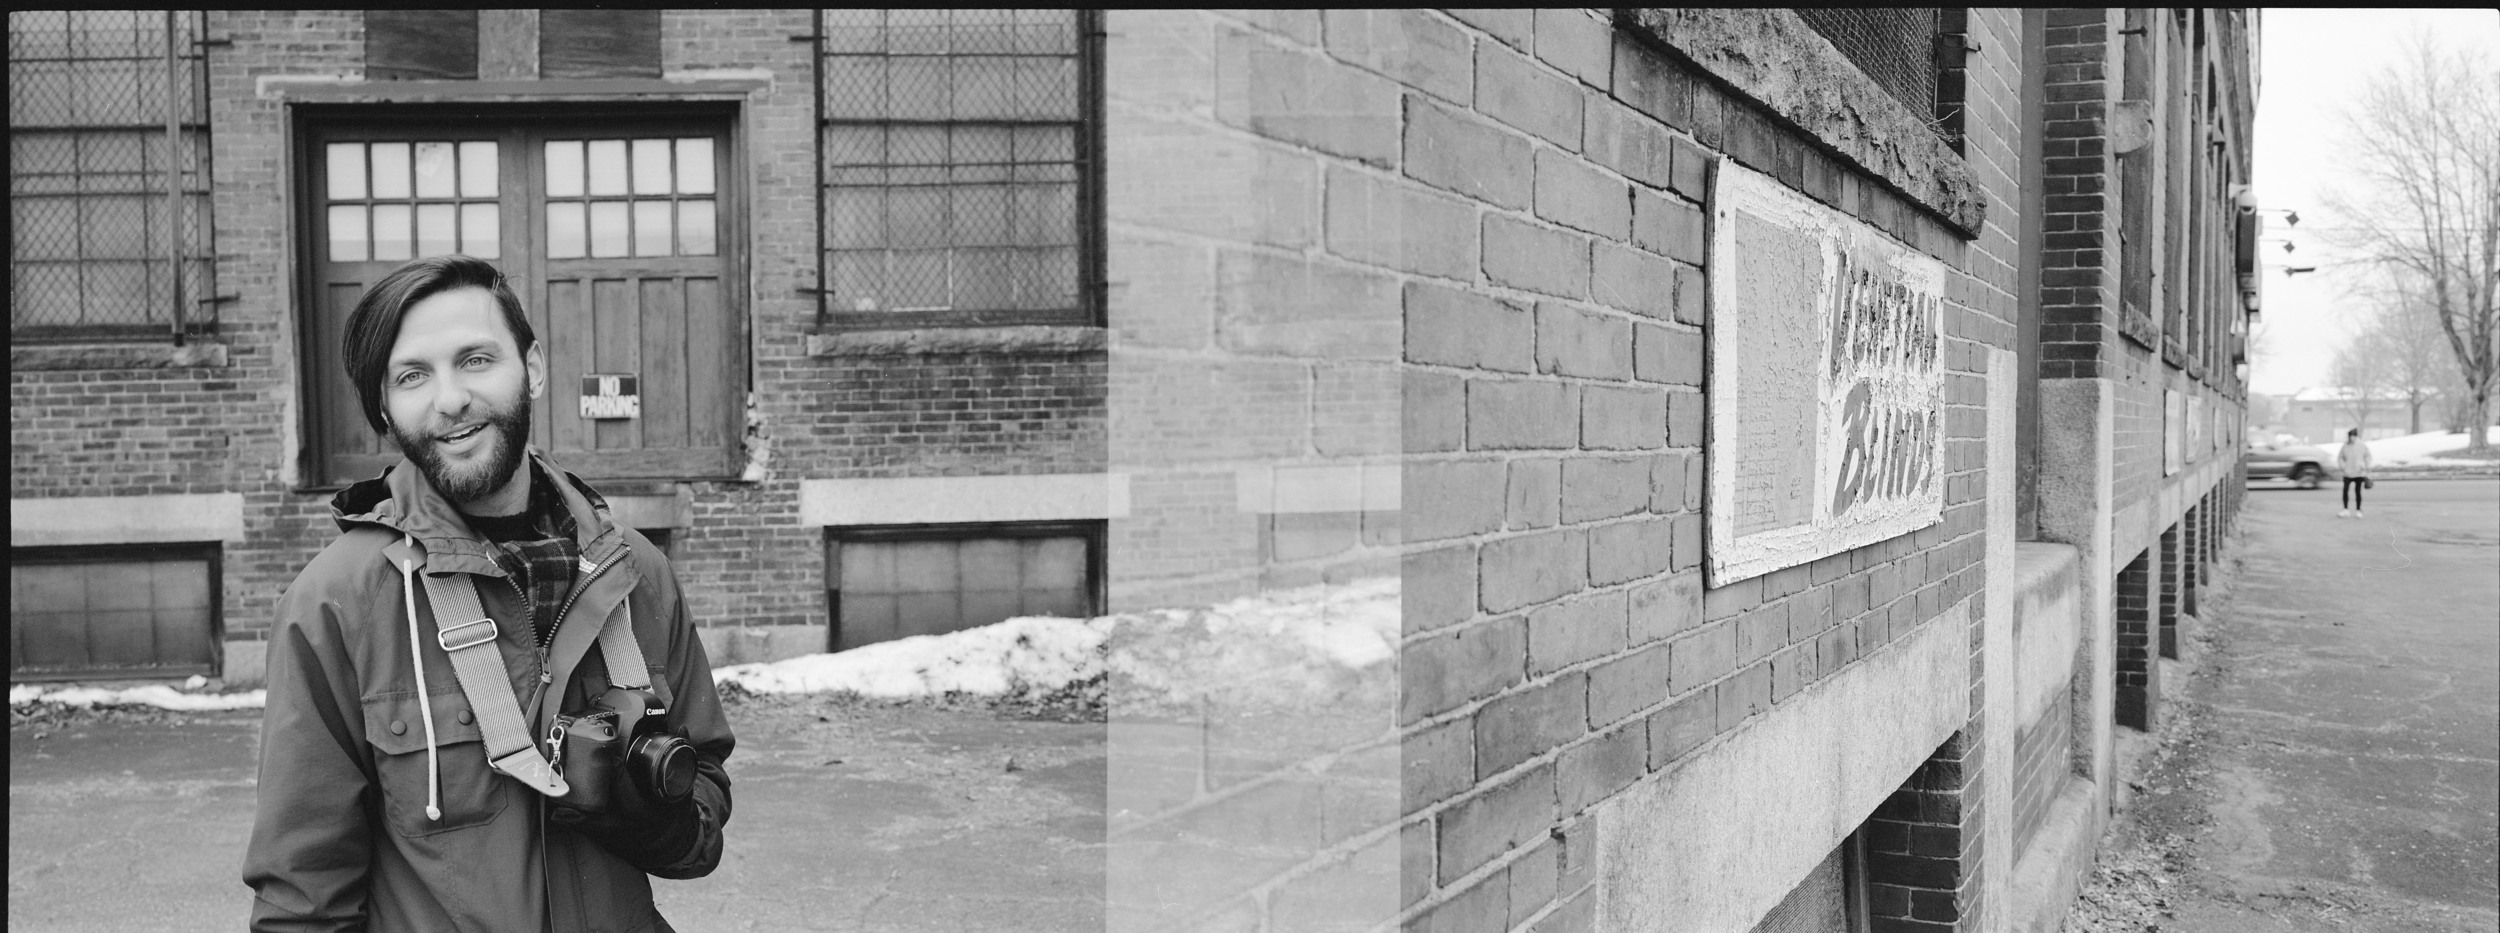 This silly day in Lowell & playing with my college's Mamiya 7 <3